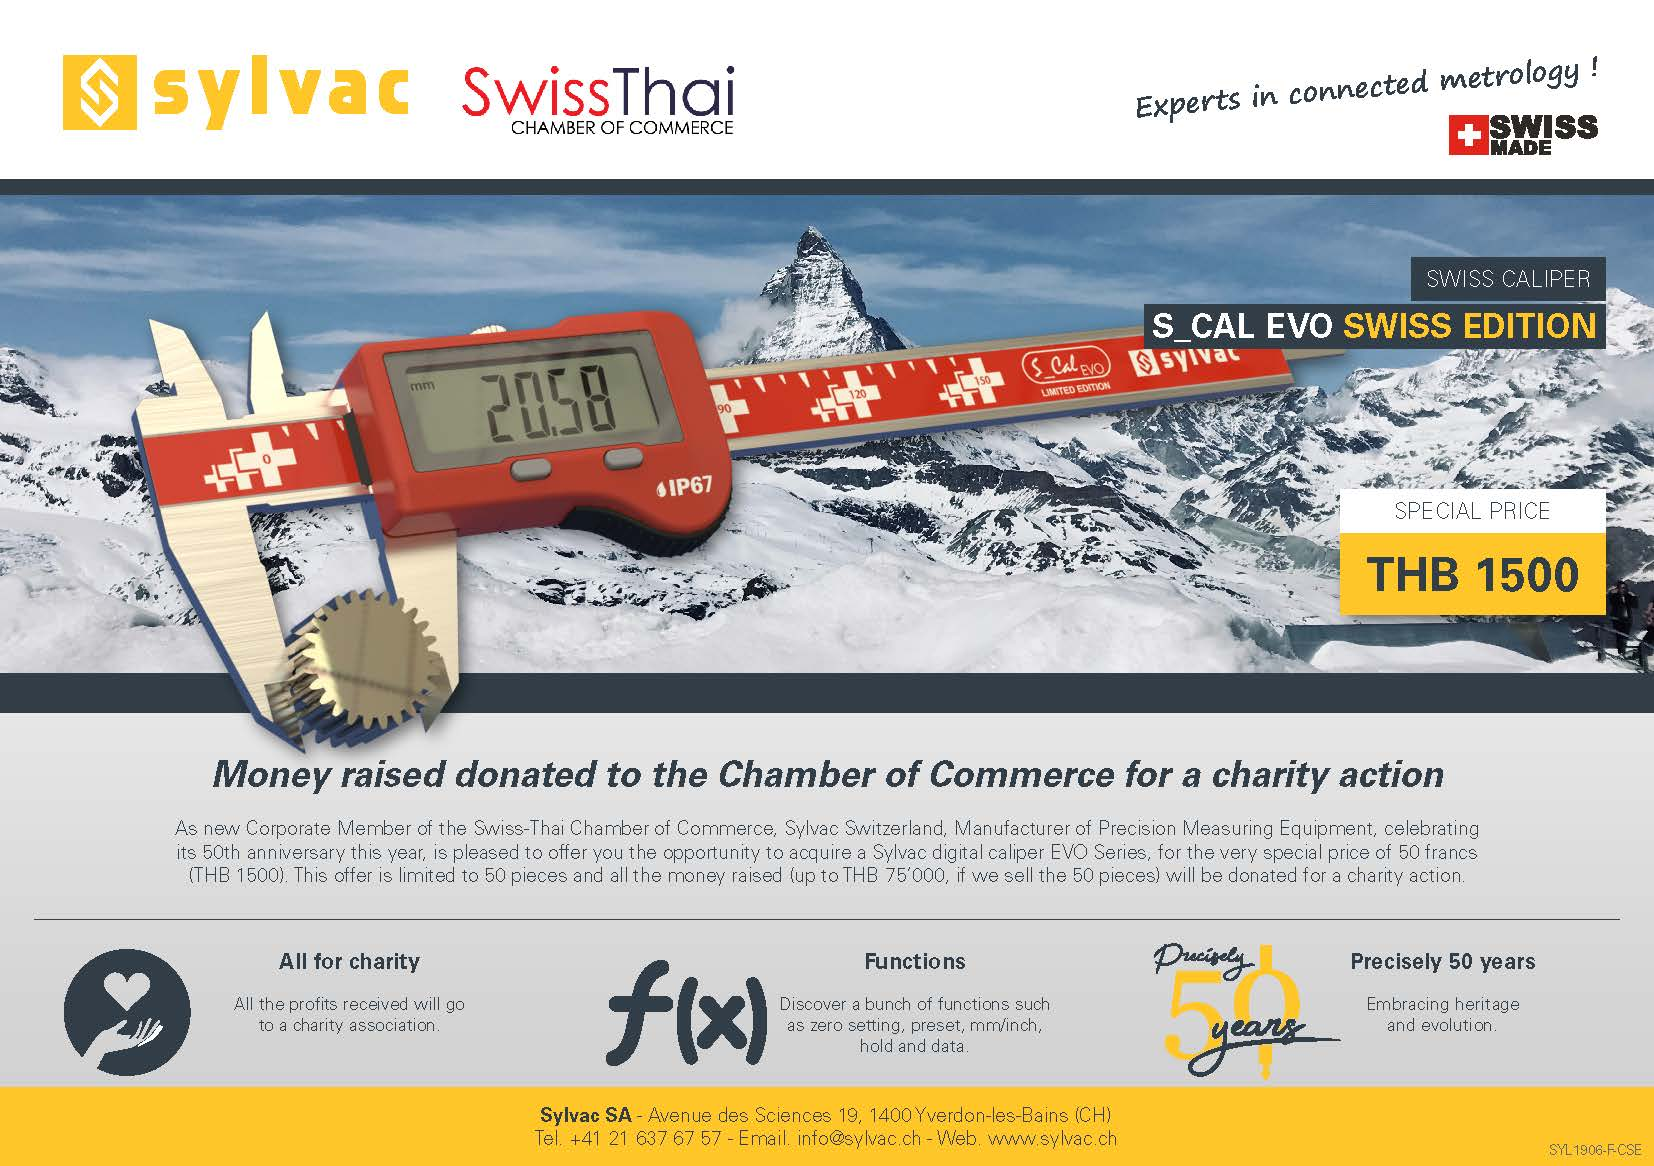 Flyer_S_Cal_EVO_SwissEdition_SwissThai_Offer_Page_1.jpg